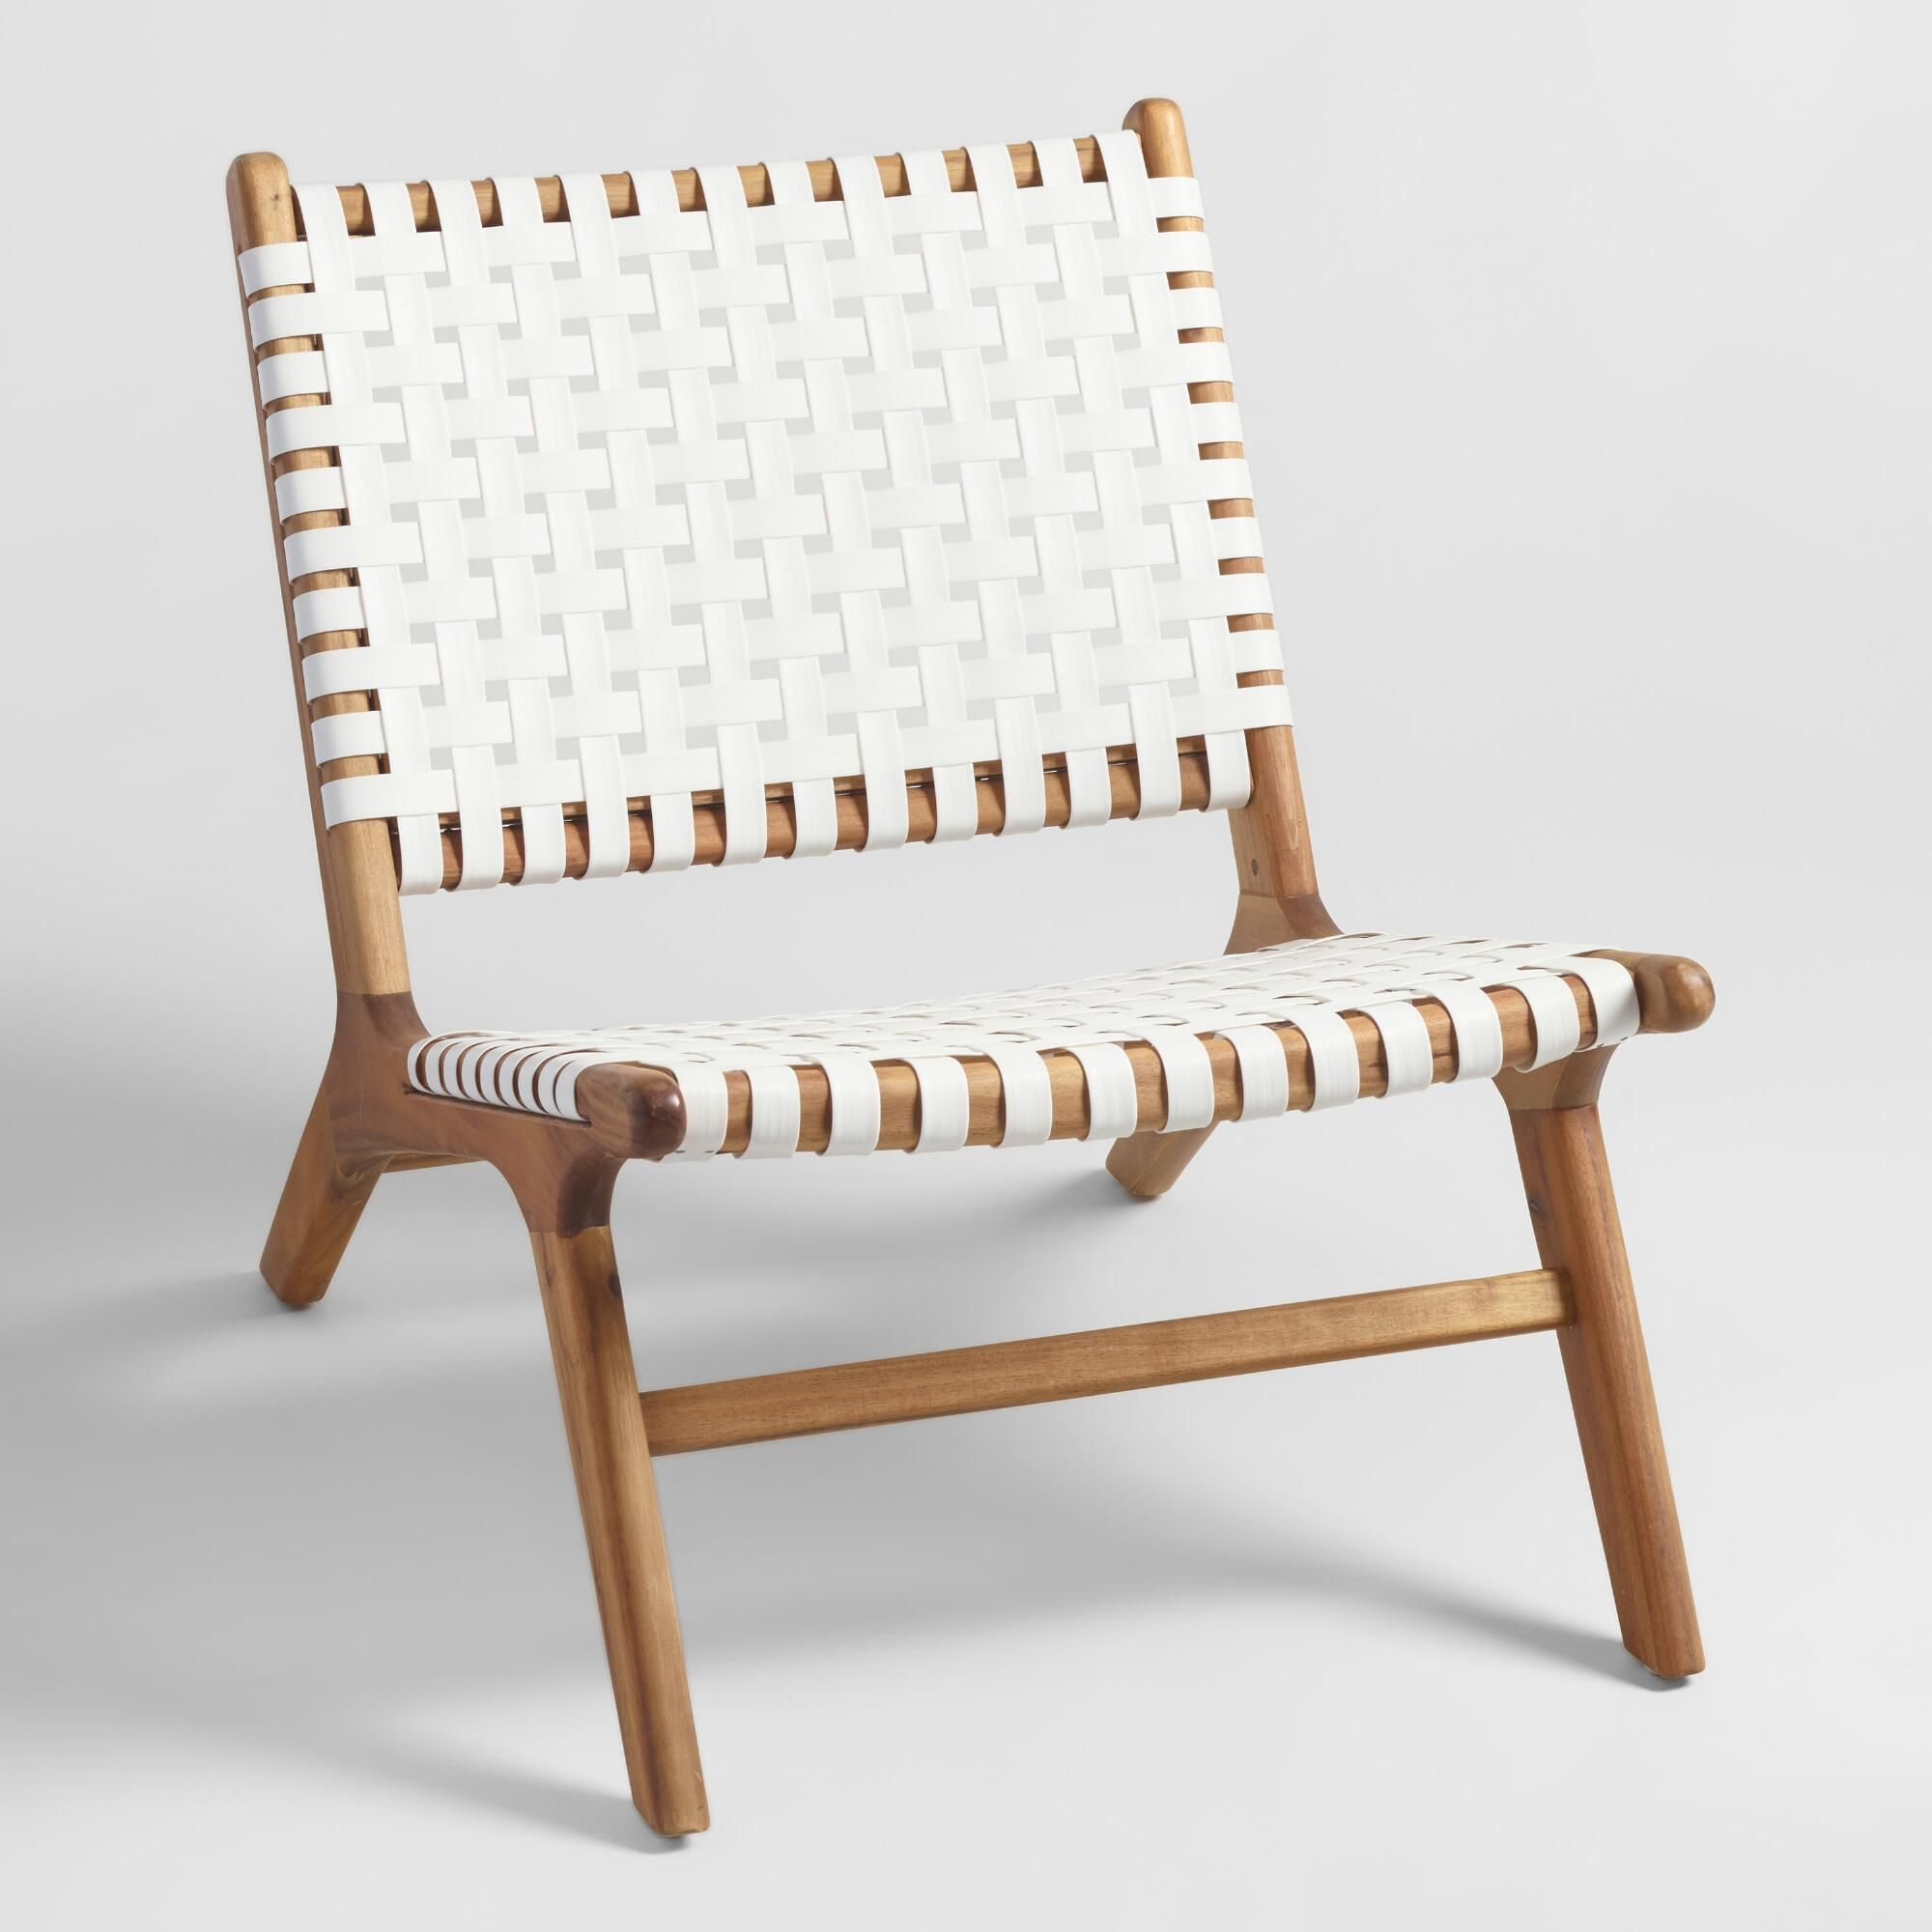 woven outdoor chair cover hire kings lynn solid acacia wood paired with flat weather resistant wicker straps in white creates visual contrast and contemporary appeal